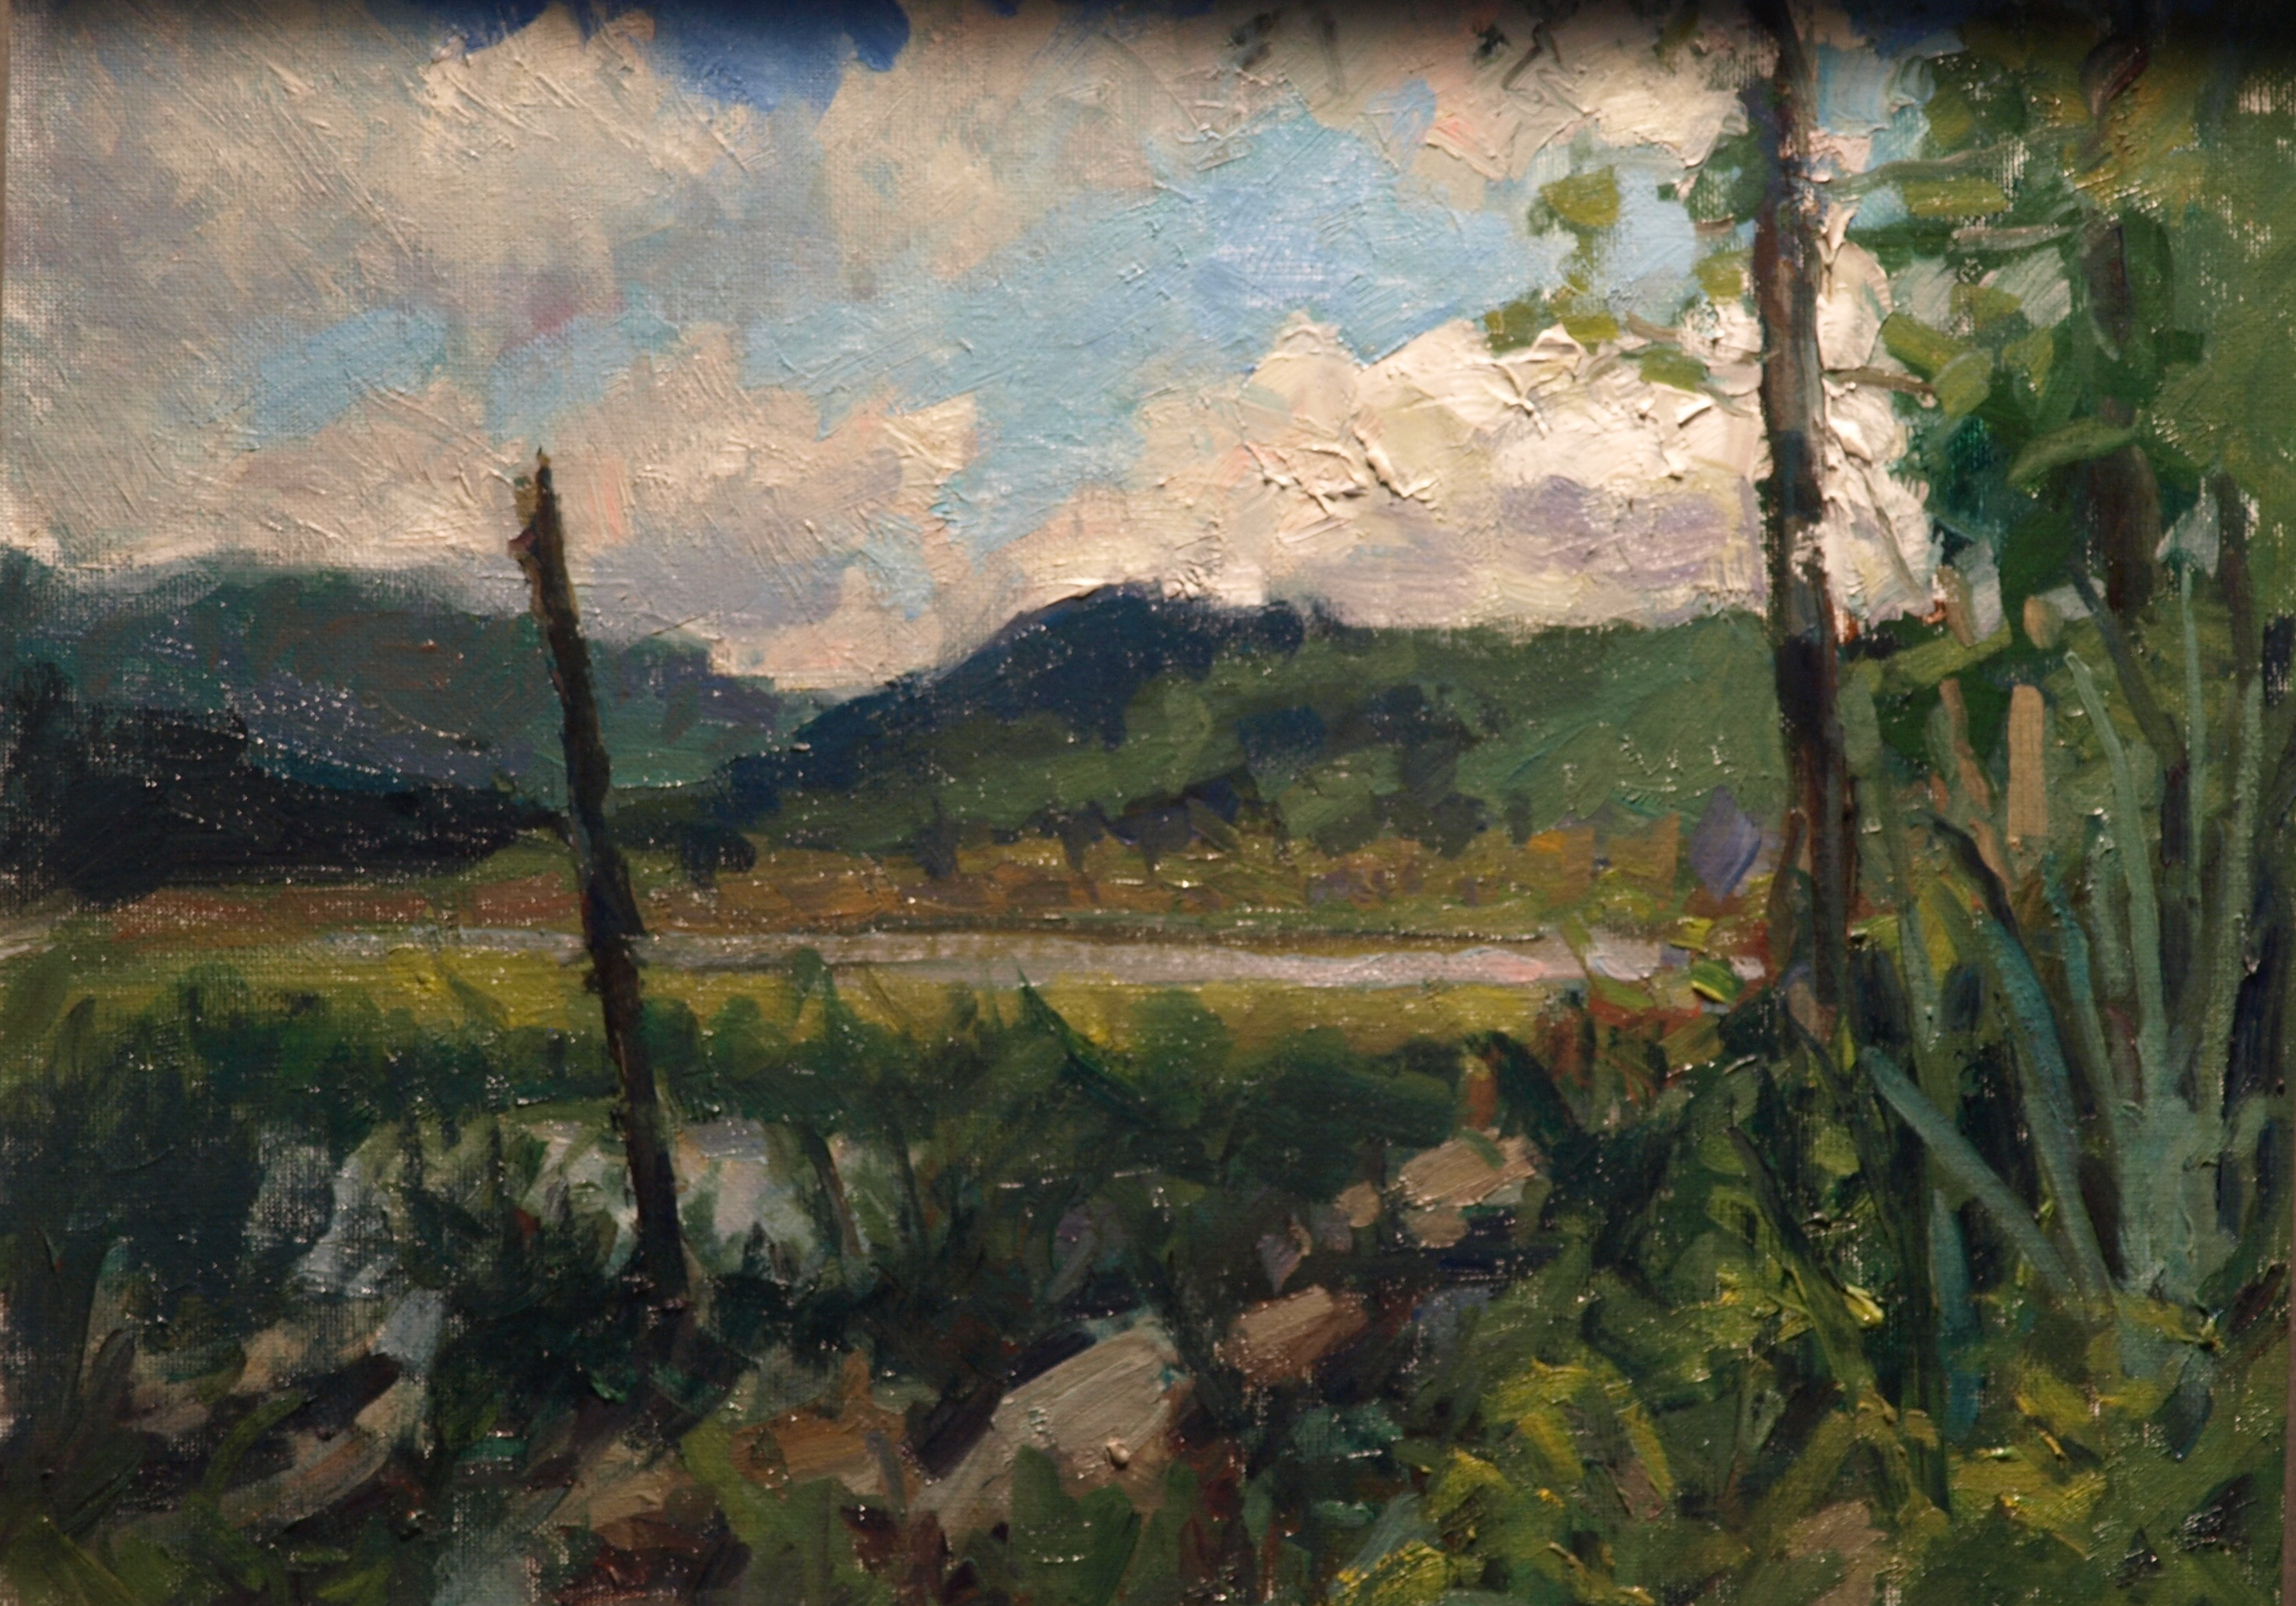 June at Mud Pond, Oil on Canvas on Board, 12 x 16 Inches, by Susan Grisell, $325